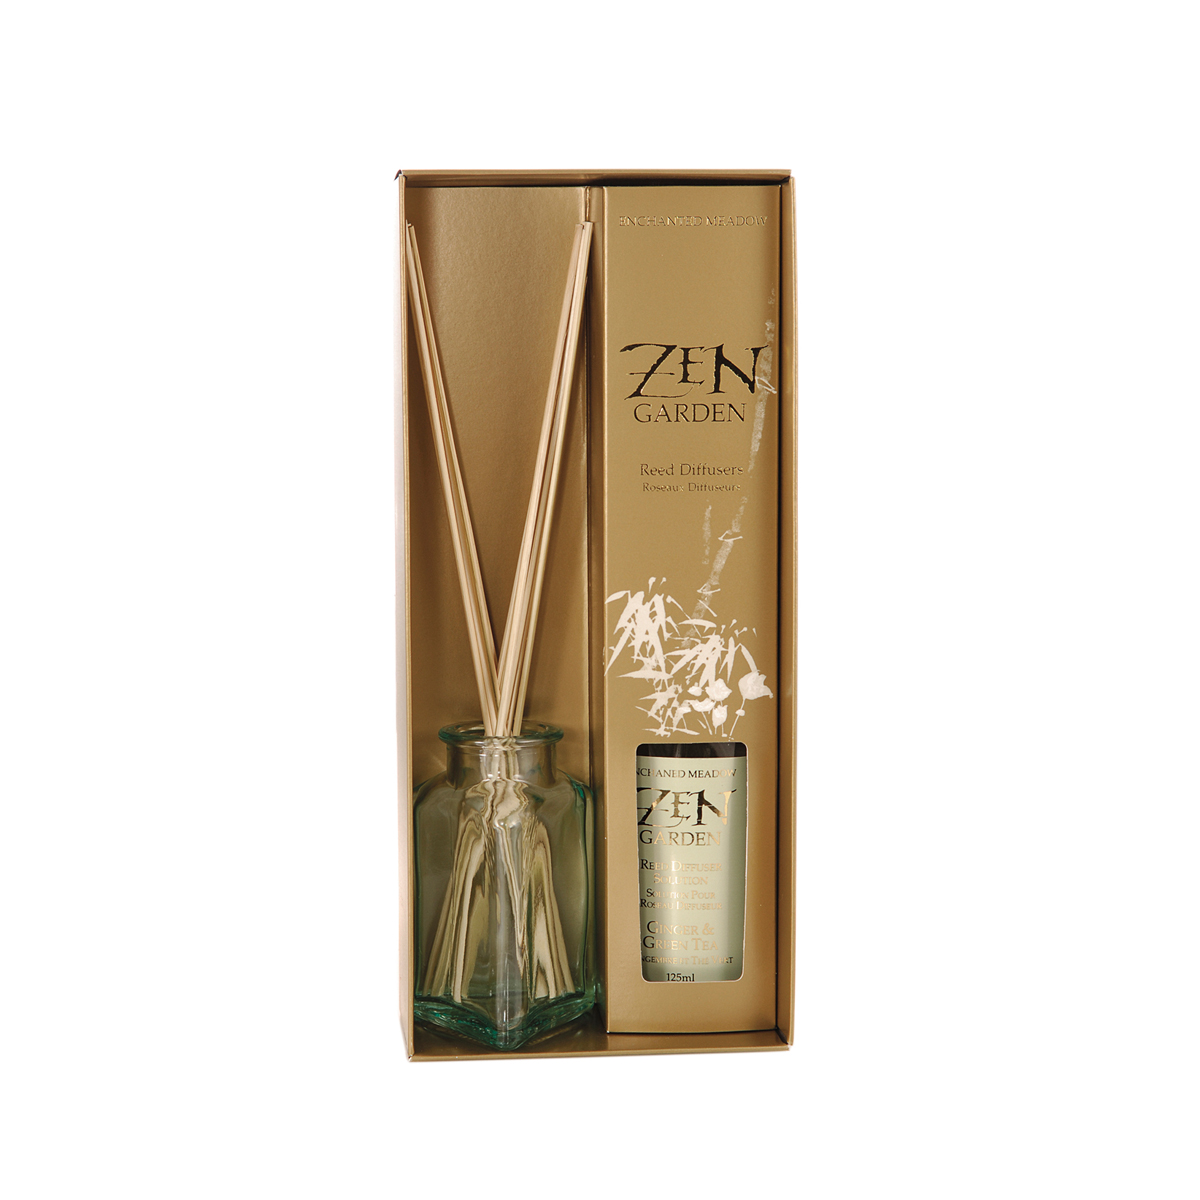 Reed Diffuser Gift Set, Ginger & Green Tea | Natural Body ...